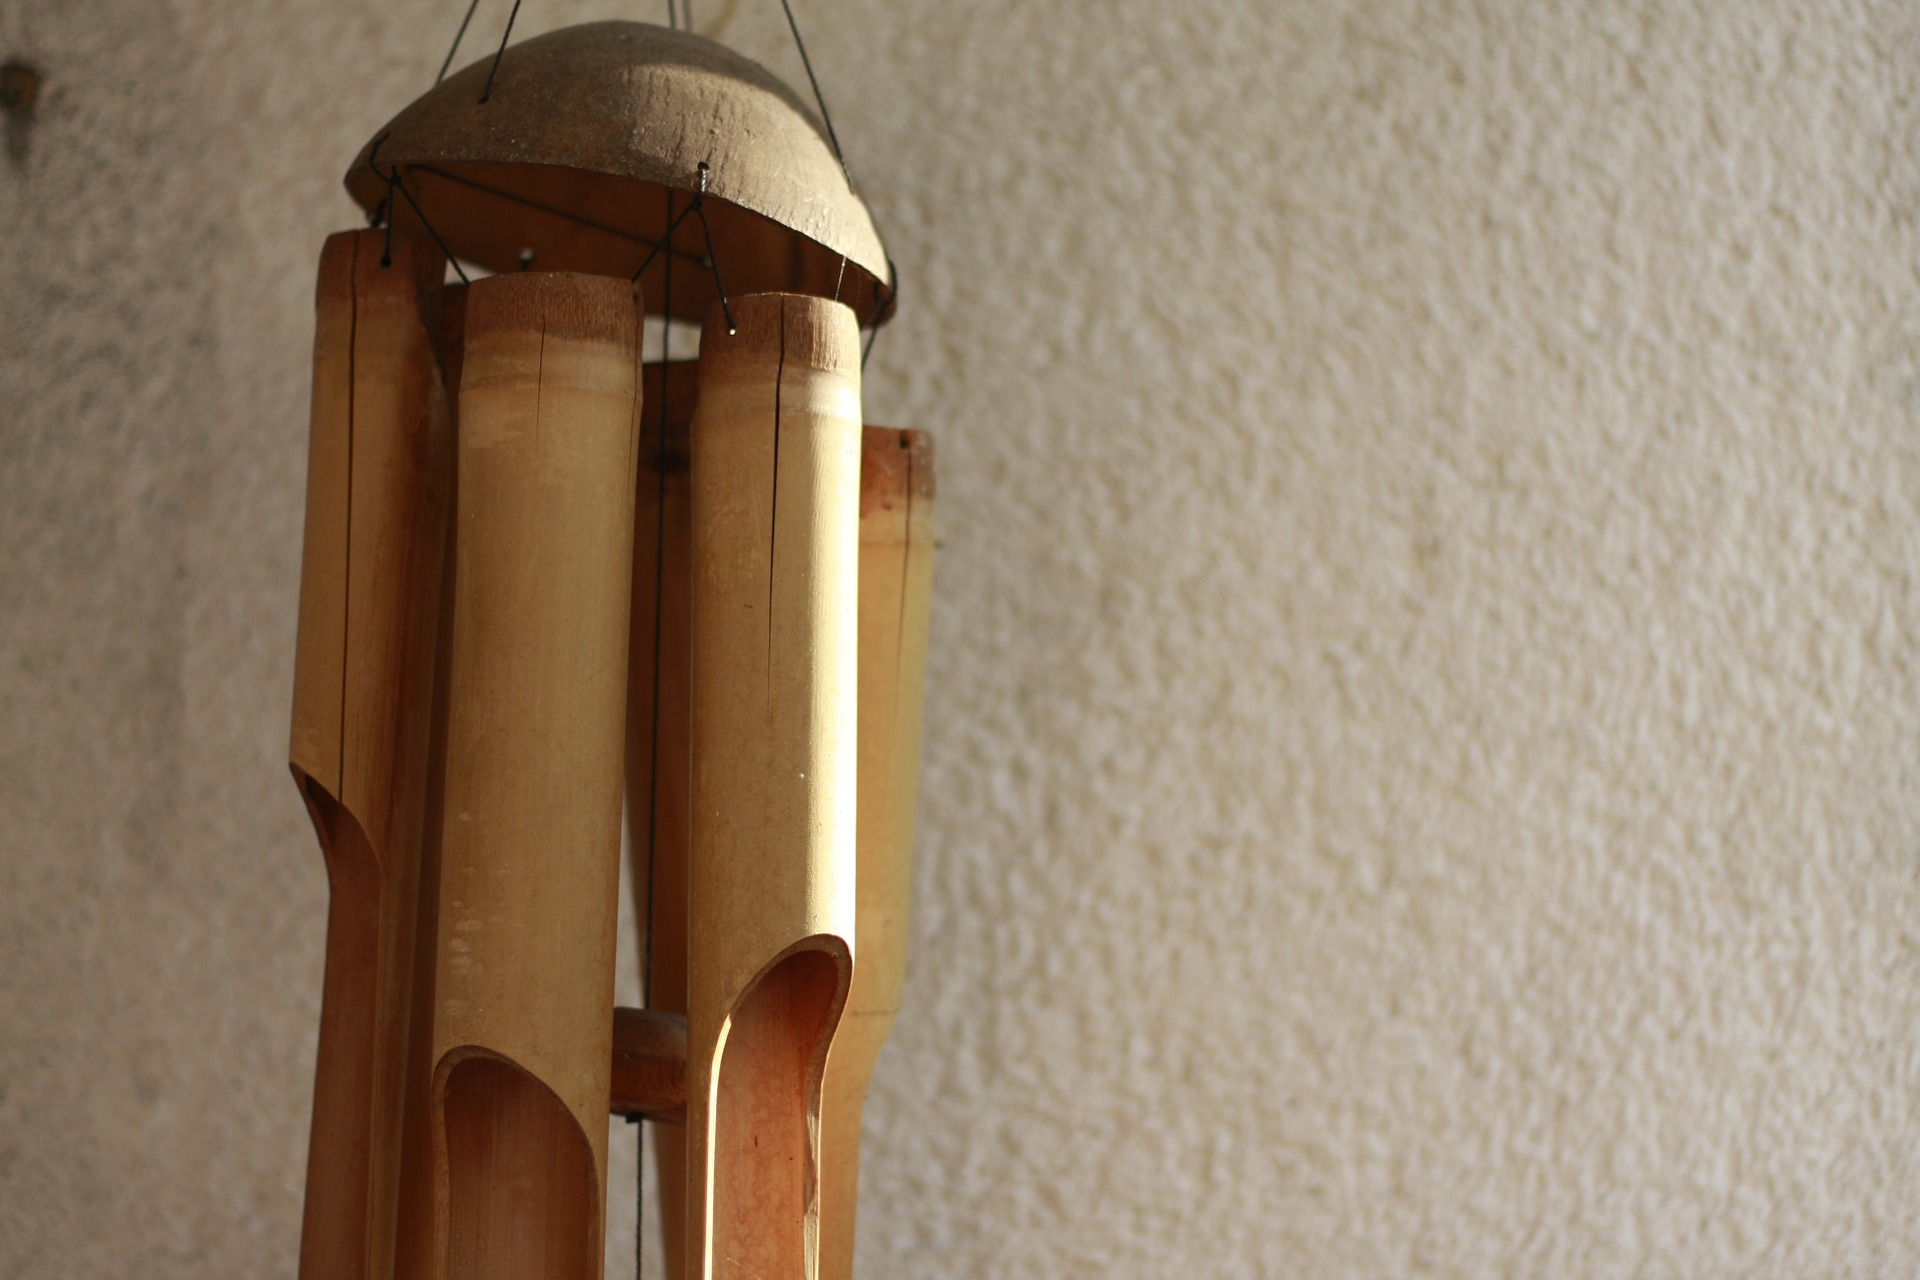 wind-chime-1159837_1920